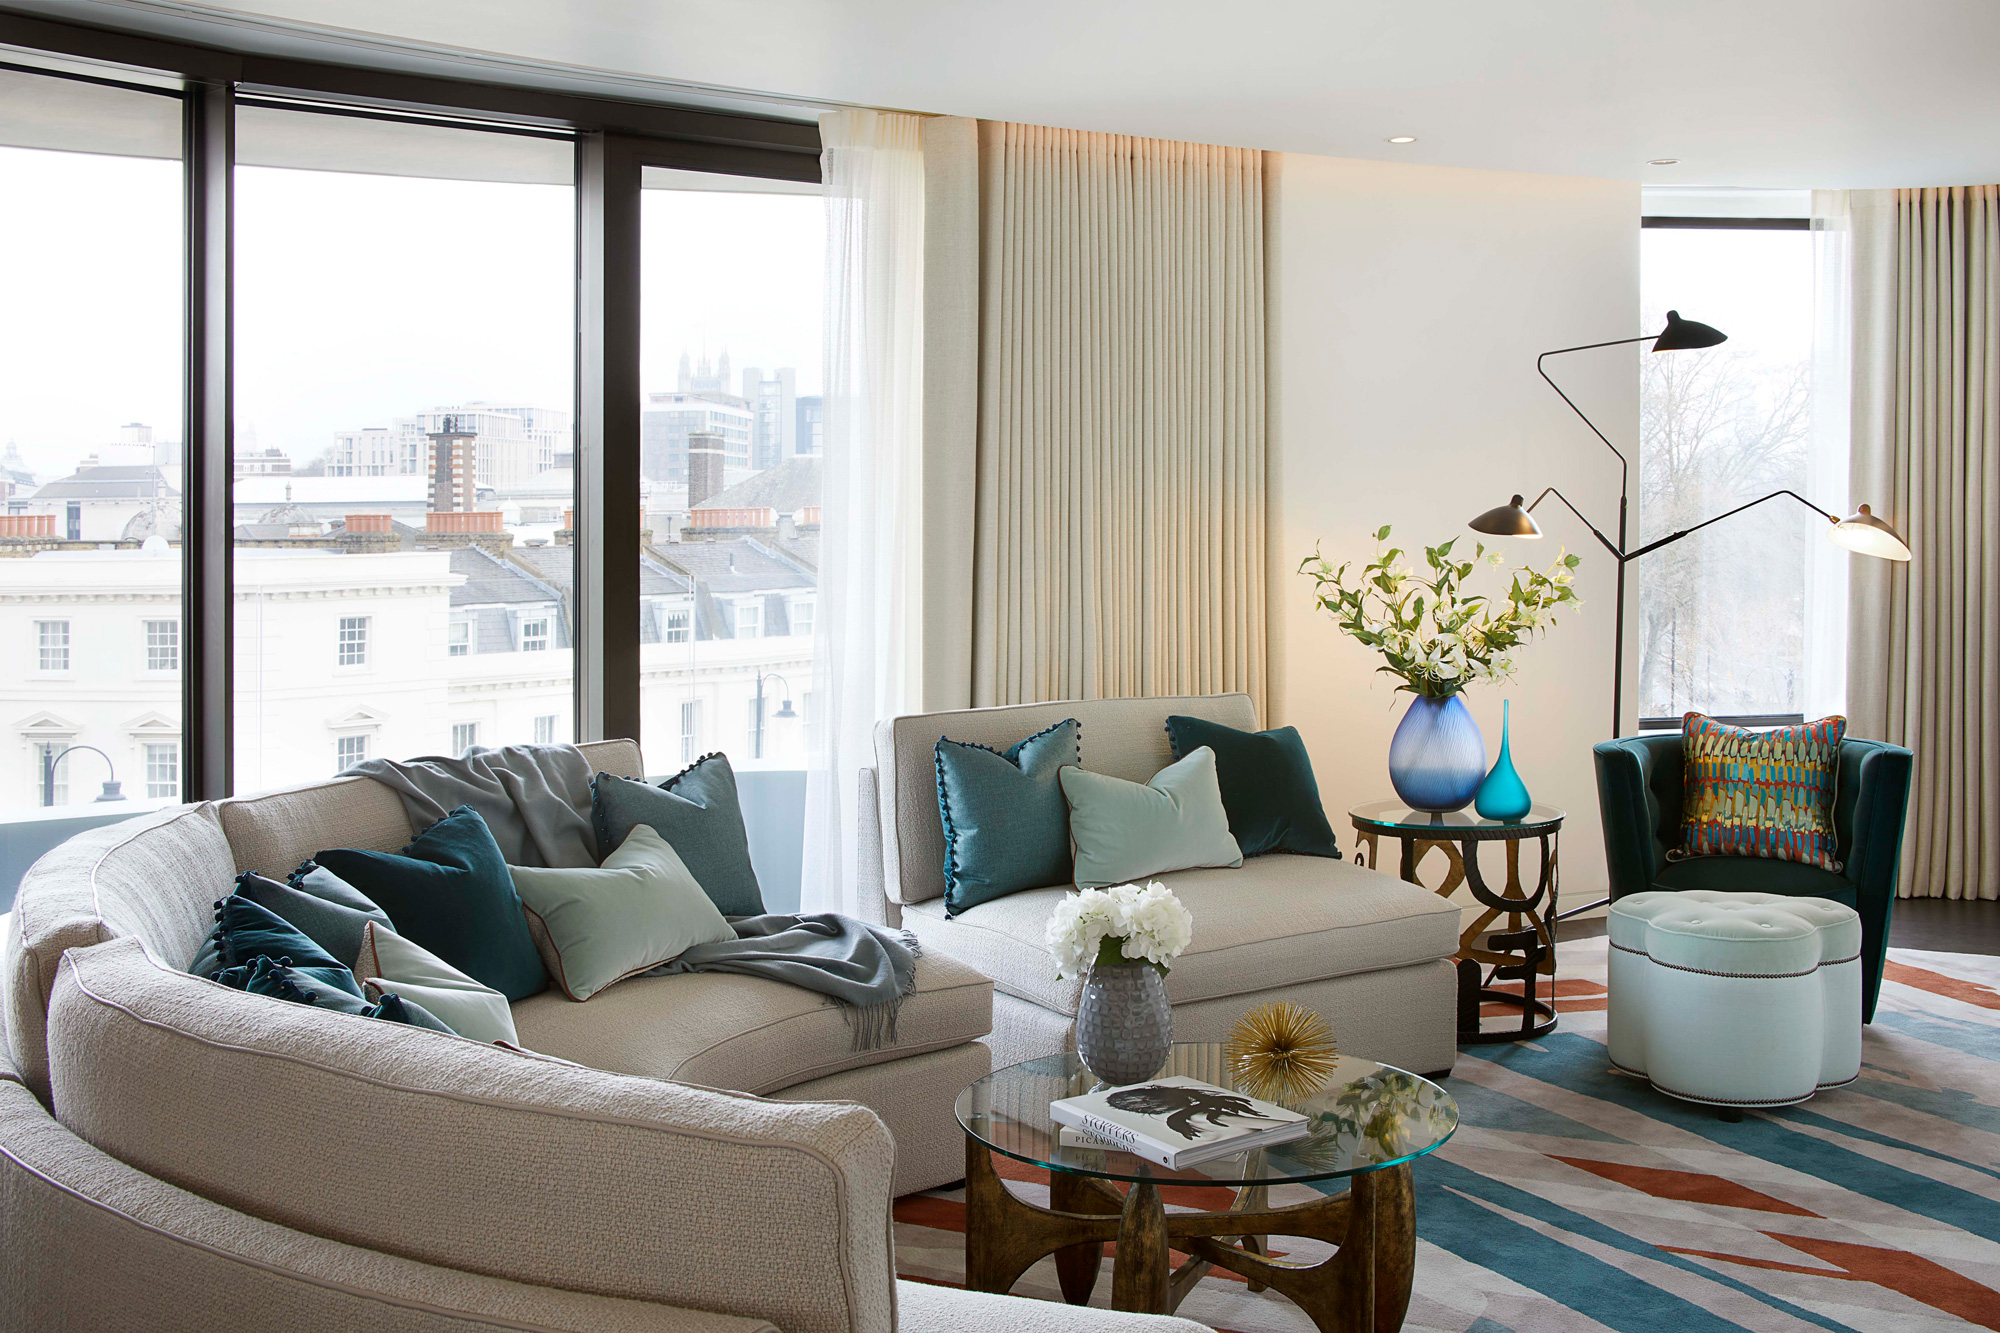 How Morpheus London Brought the River Into this Westminster Apartment westminster apartment How Morpheus London Brought the River Into this Westminster Apartment How Morpheus London Brought the River Into this Westminster Apartment 5